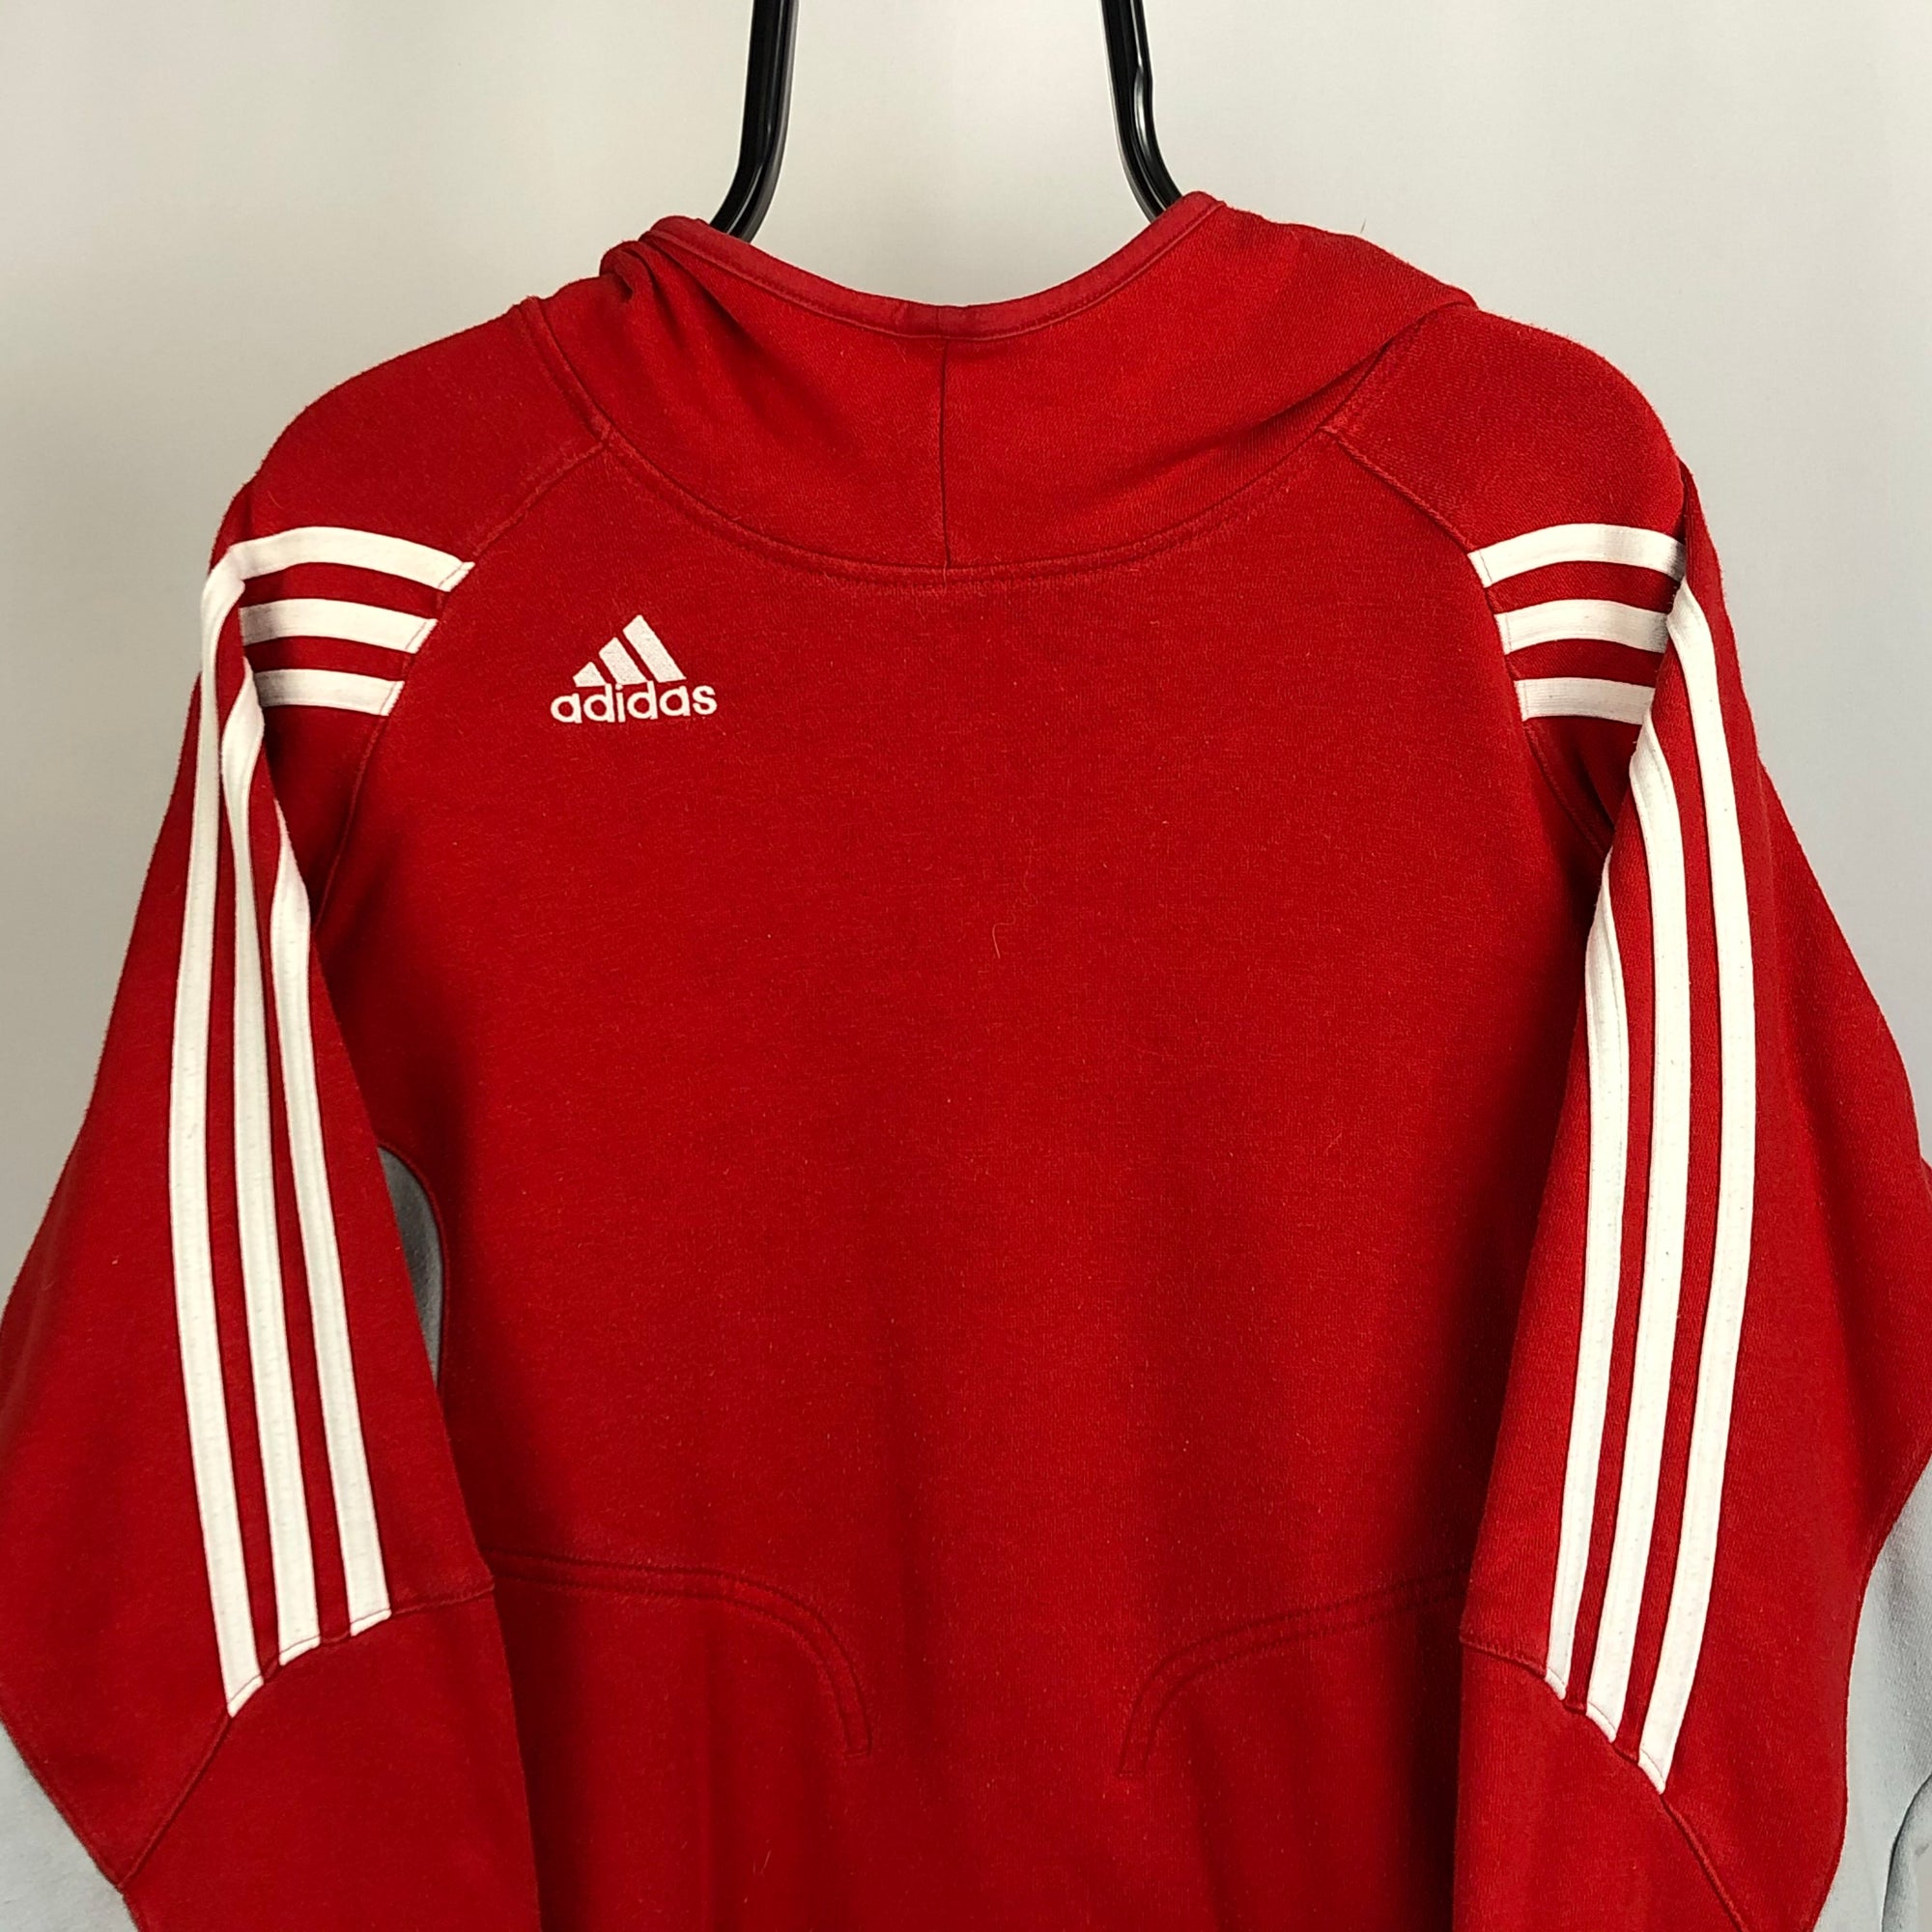 Adidas Embroidered Small Logo Hoodie in Red/Stone - Men's Medium/Women's Large